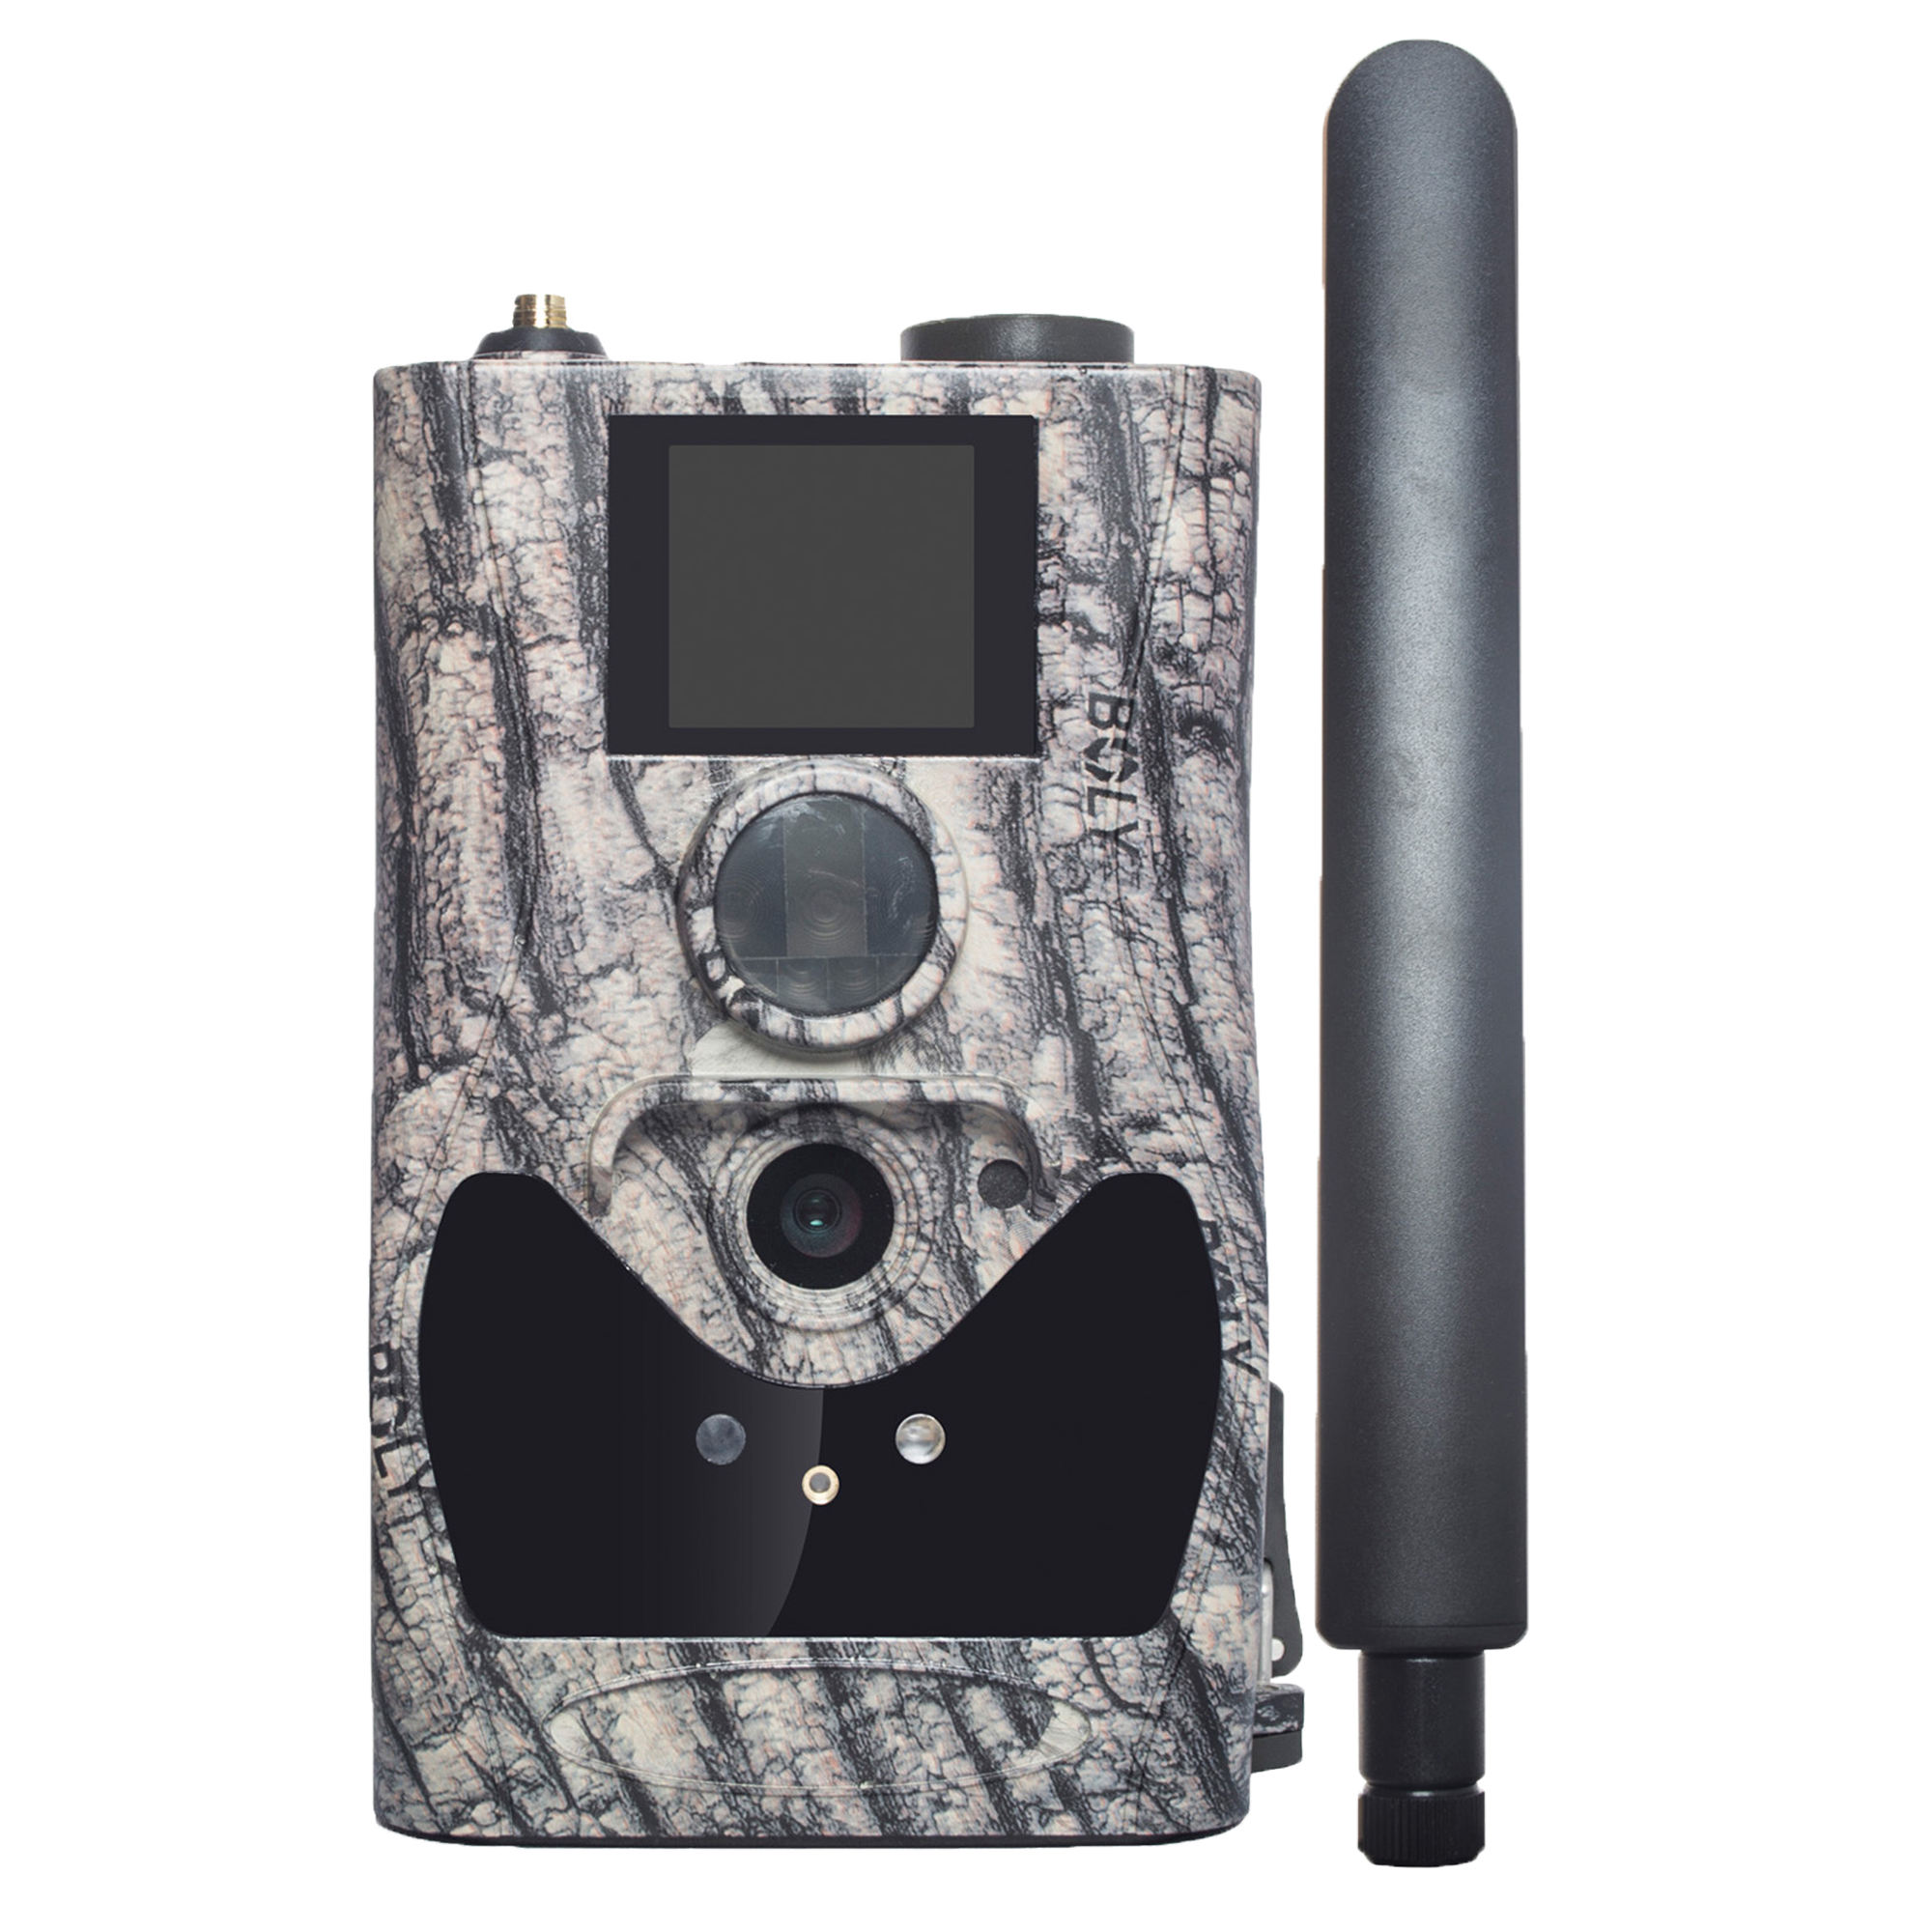 Boly 4G Wireless Trail Camera 24MP1080P Scouting Hunting Camera 90ft Detection 940nm IR Support Audio Recording Molnus Cloud